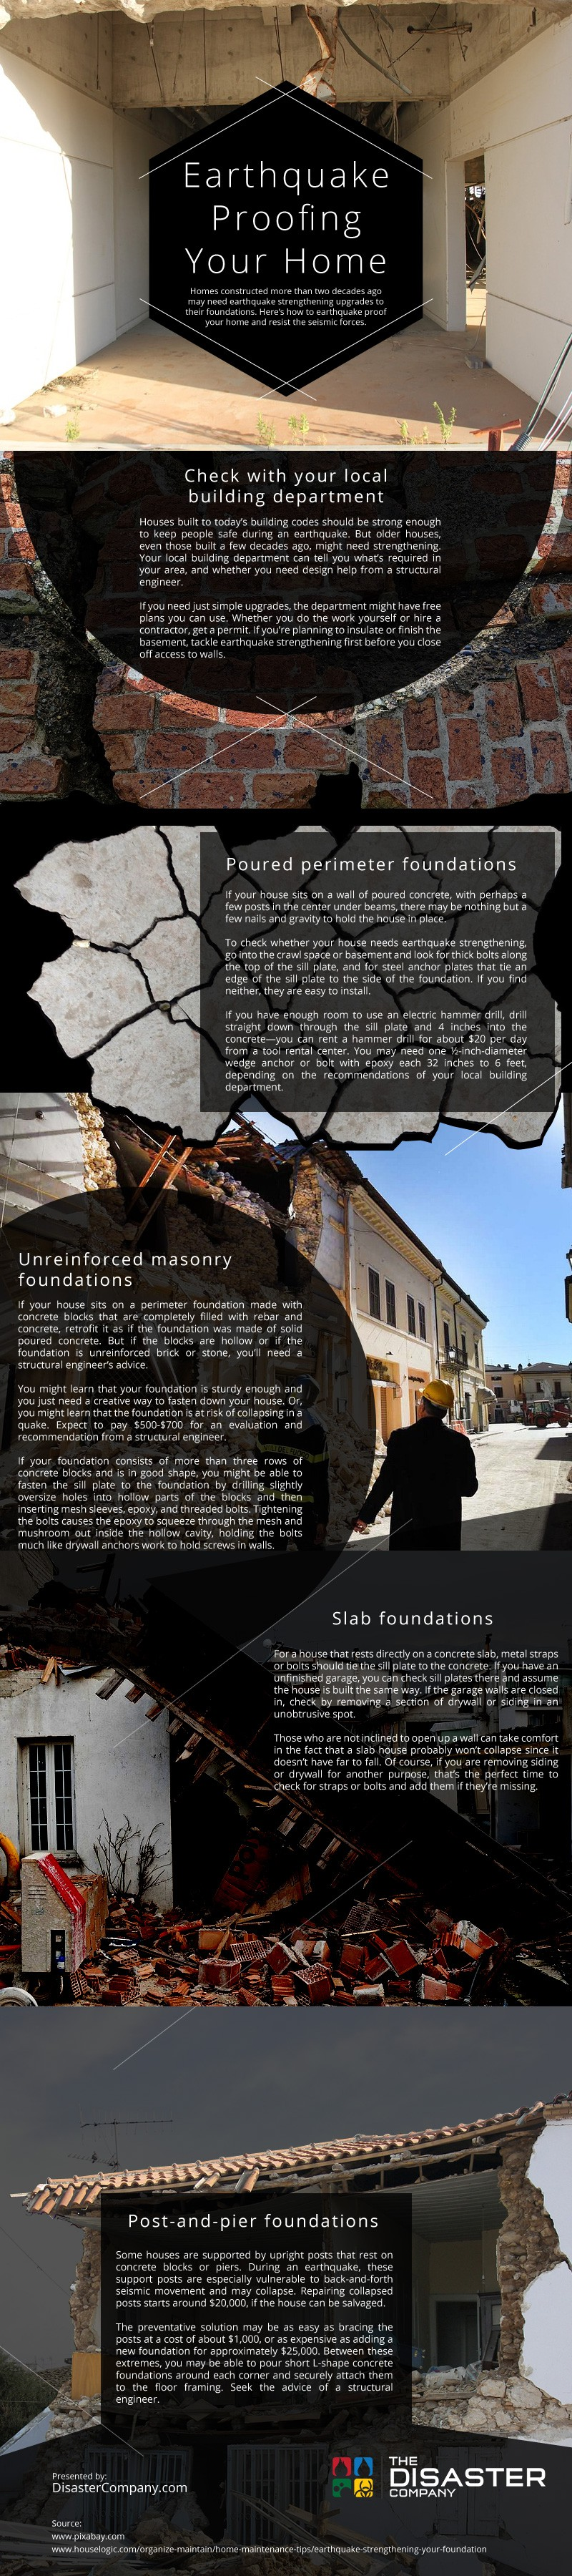 Earthquake-Proofing-Your-Home Infographic